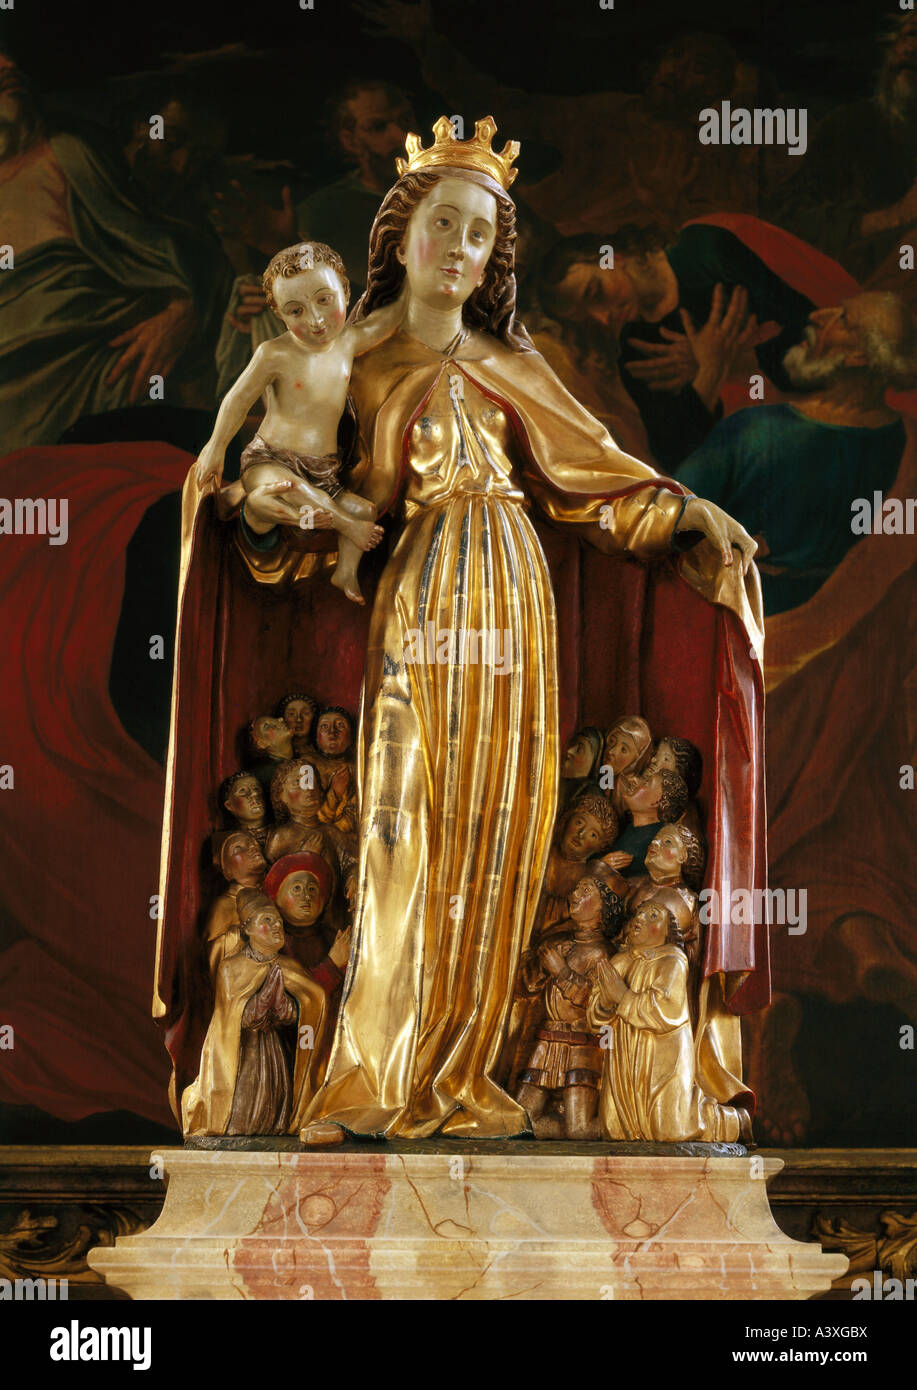 fine arts, Mary with protective covering and infant Jesus, 1474, sculpture, wood, Saint Nicholas parish church, - Stock Image